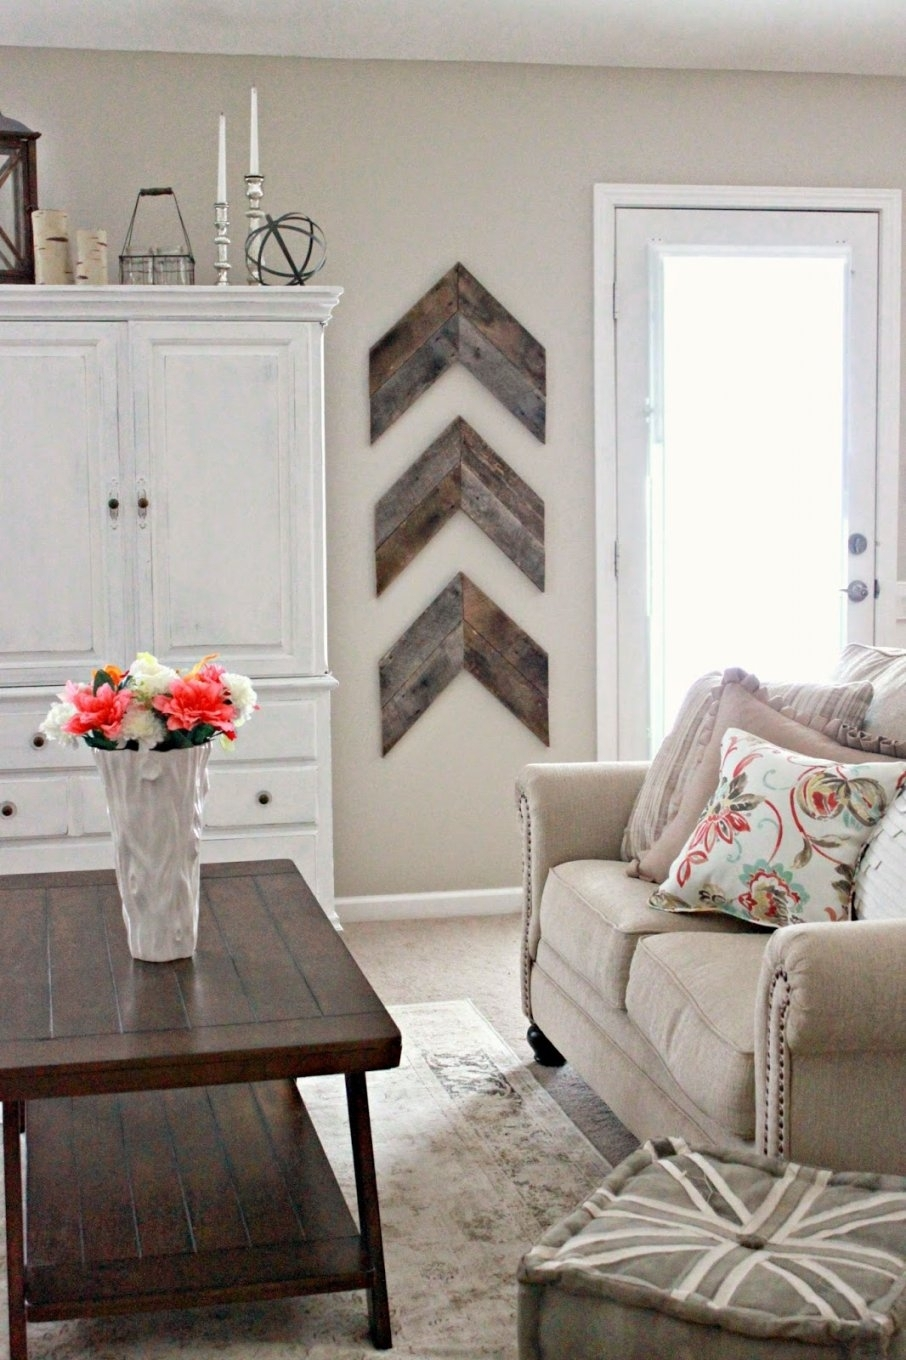 27 Best Rustic Wall Decor Ideas And Designs For 2018 Regarding Throughout Most Up To Date Rustic Wall Art (View 2 of 15)